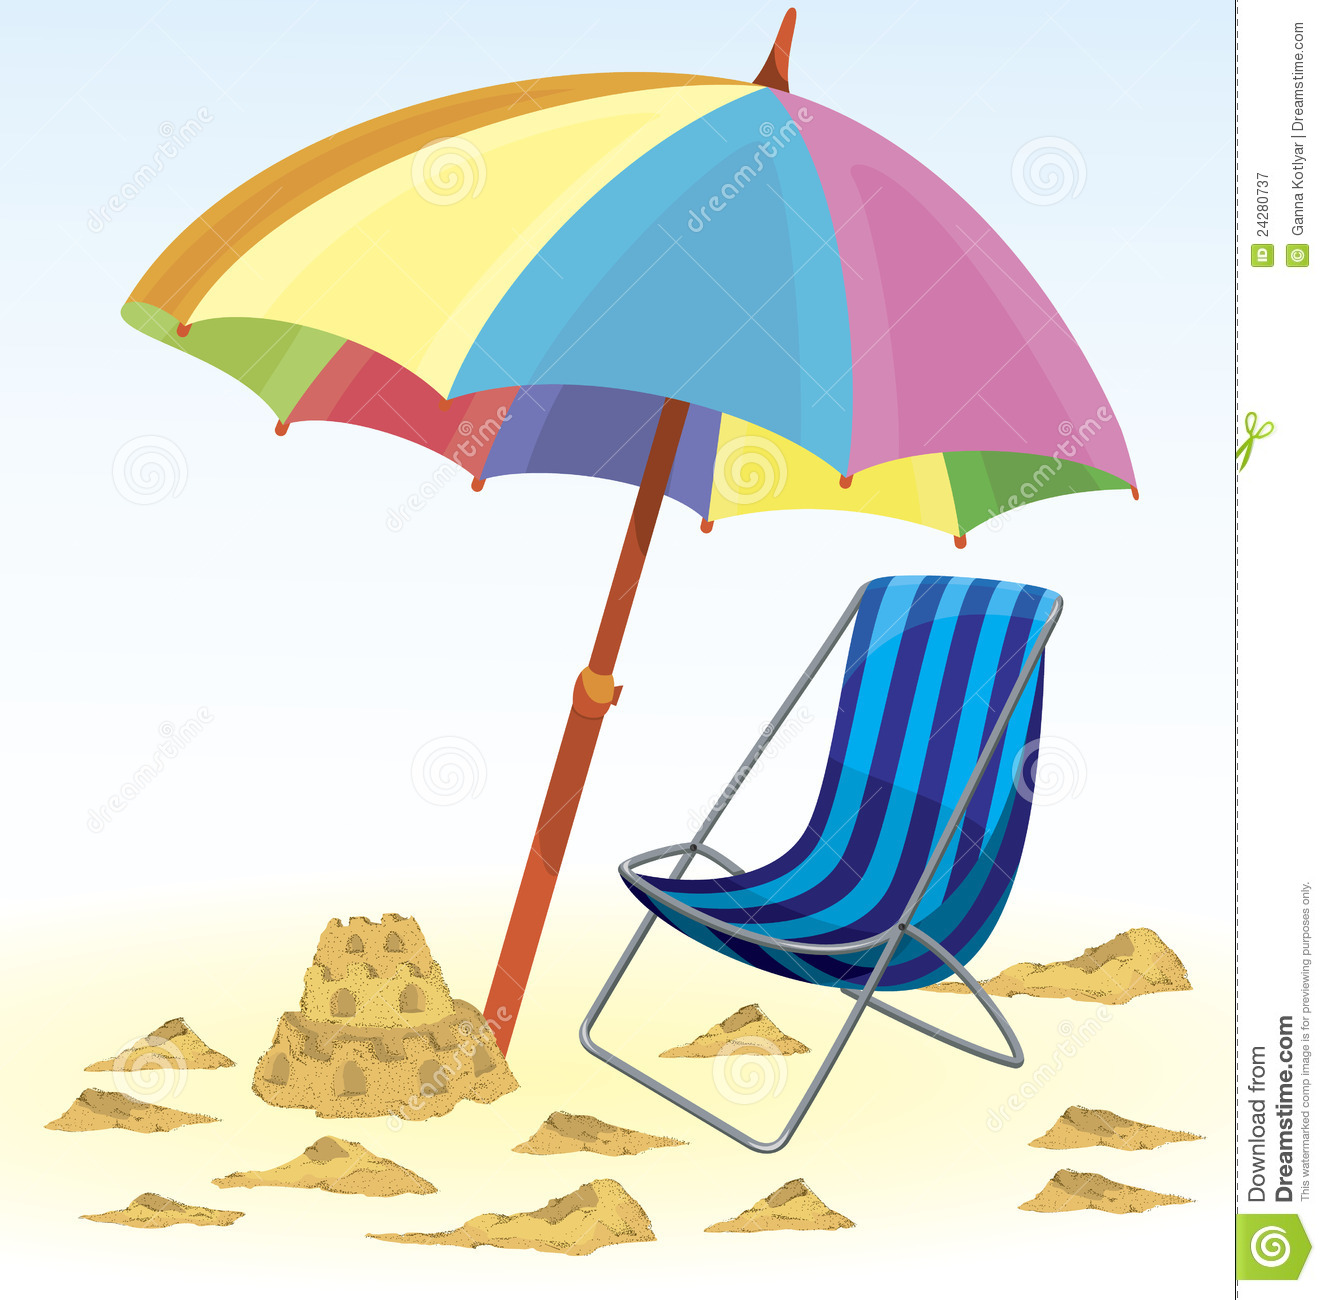 Beach chair umbrella clipart.